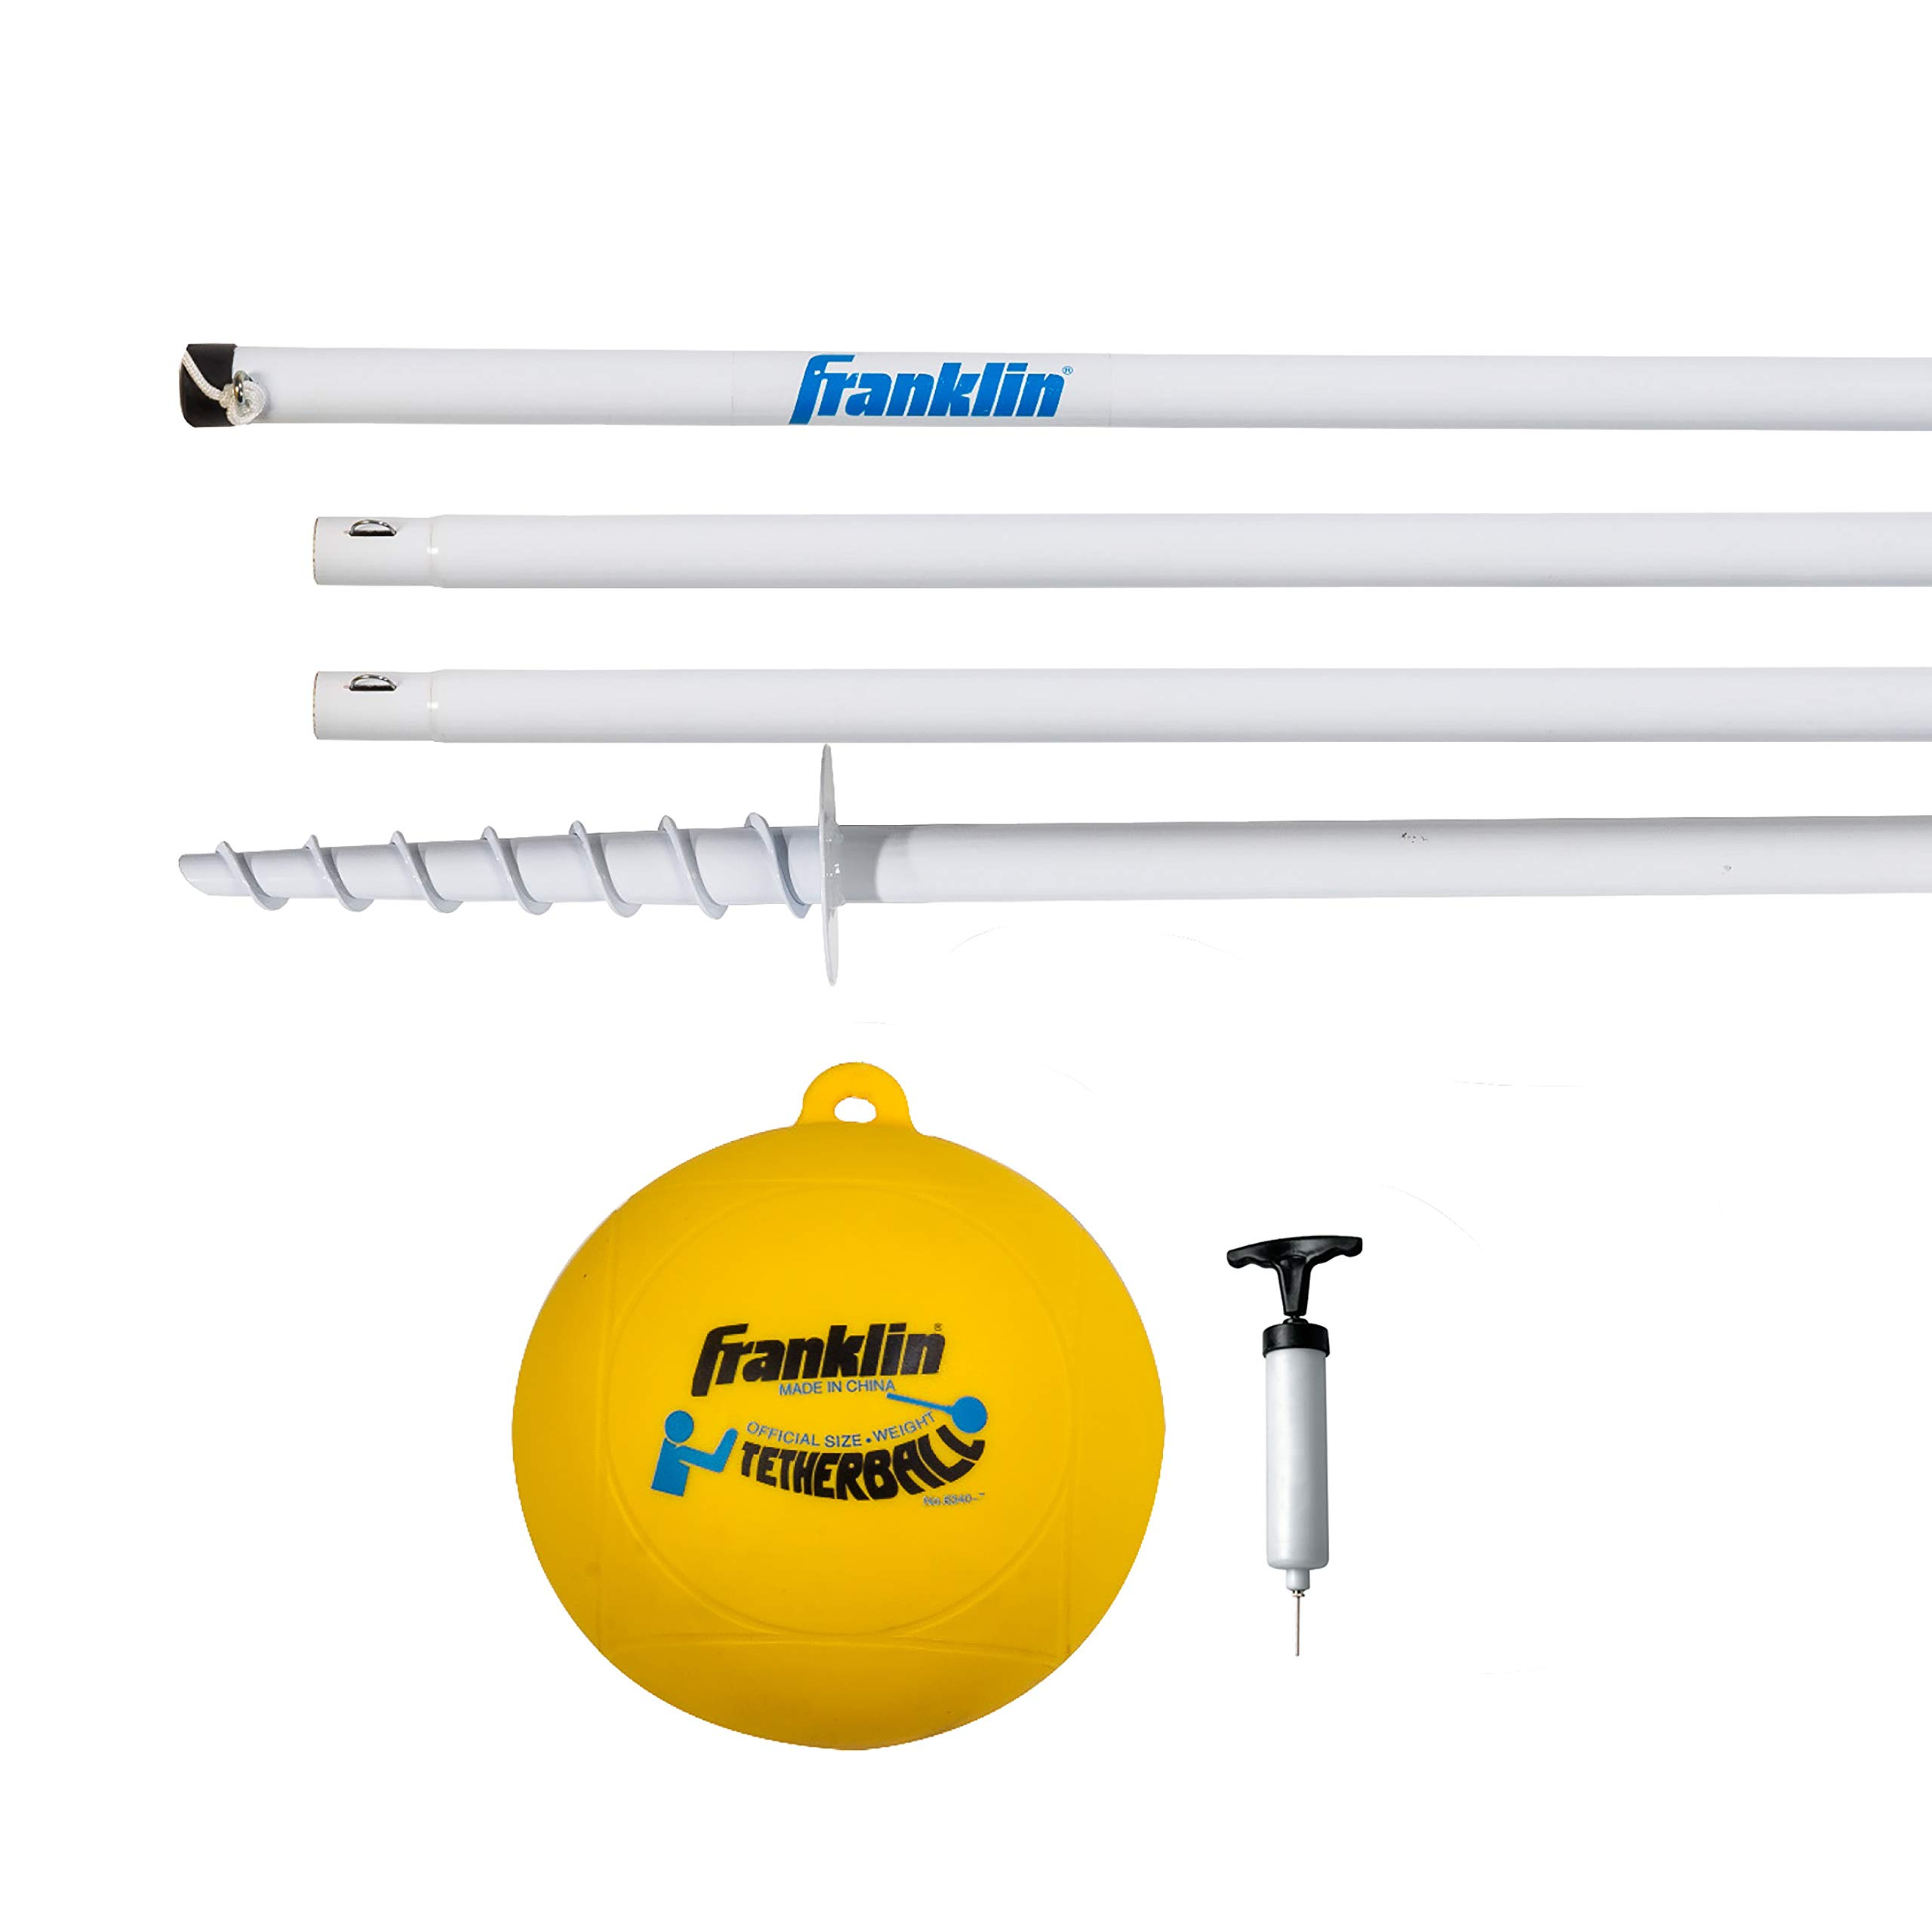 Franklin Sports Tetherball - Tetherball Ball, Rope and Pole Set - Portable Steel Tetherball Set with Easy Assembly - Classic Outdoor Game by Franklin Sports